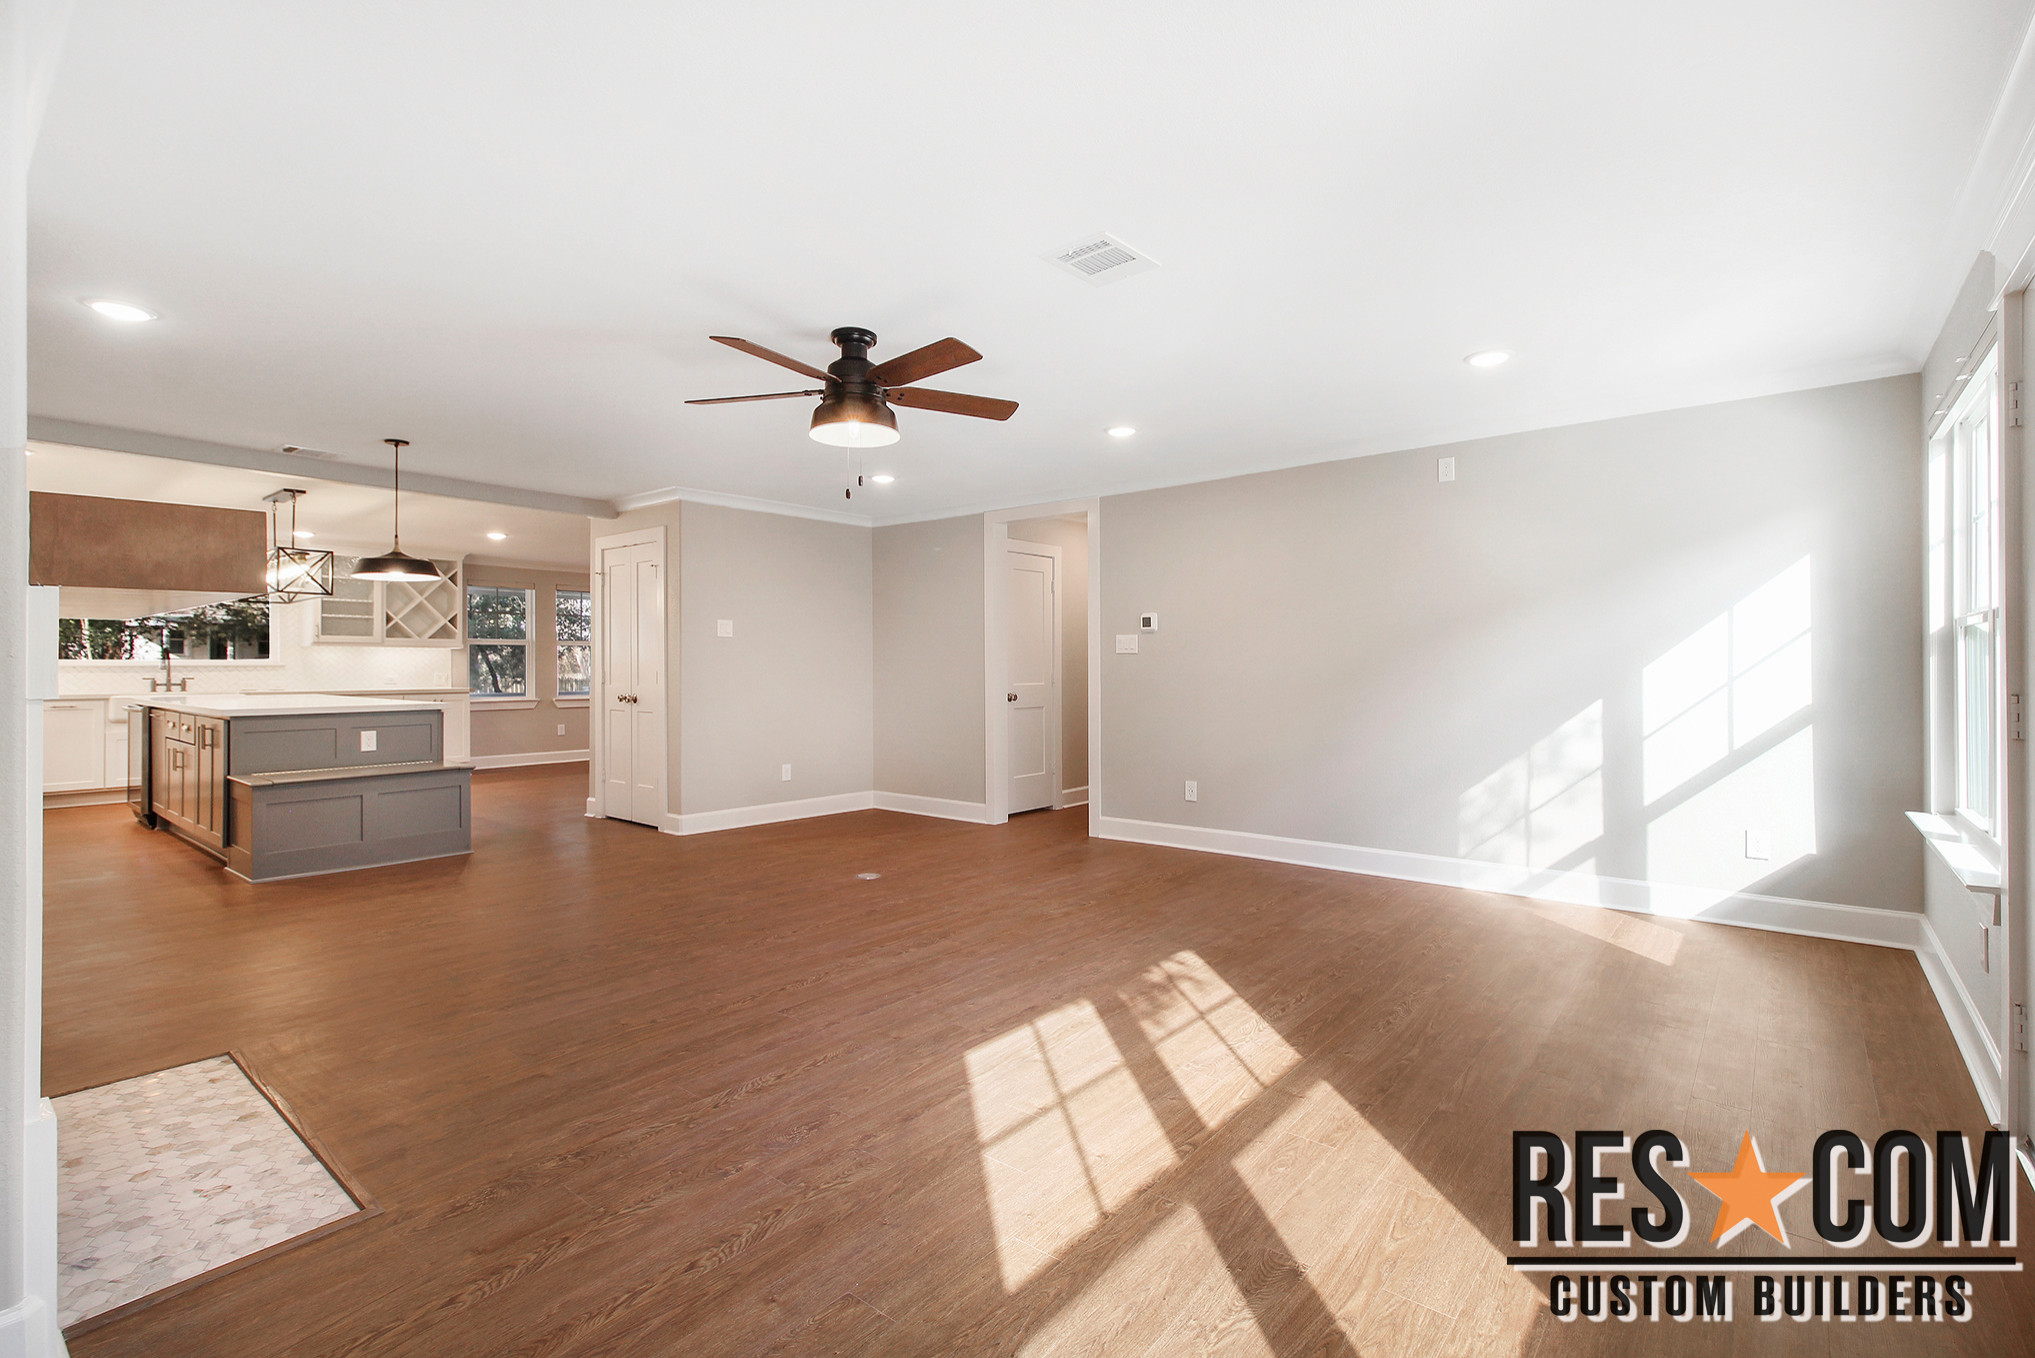 Guenther Full Home Renovation